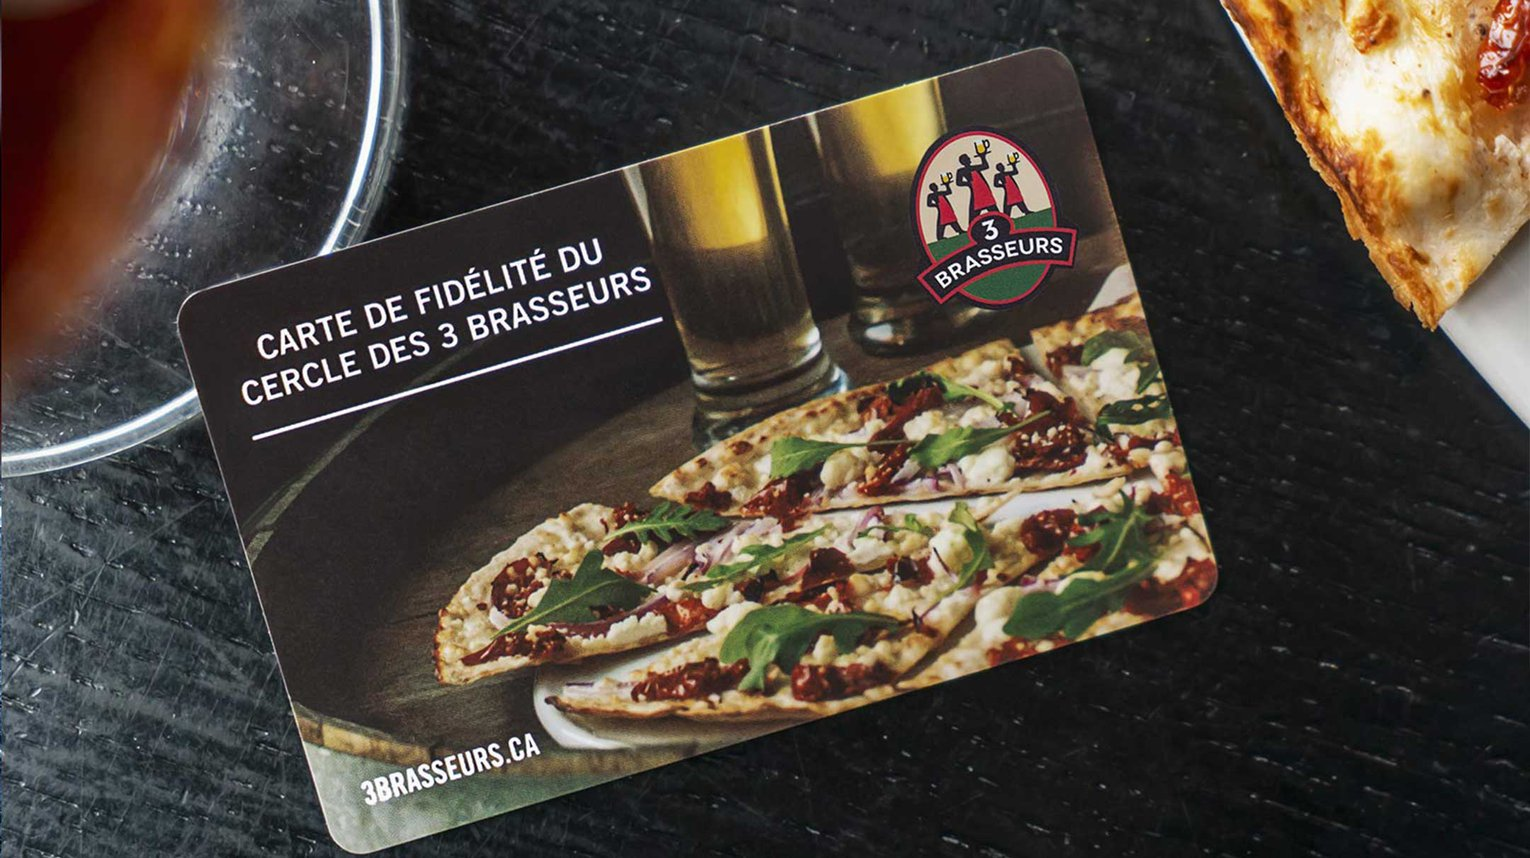 Rewards Program 3 Brasseurs